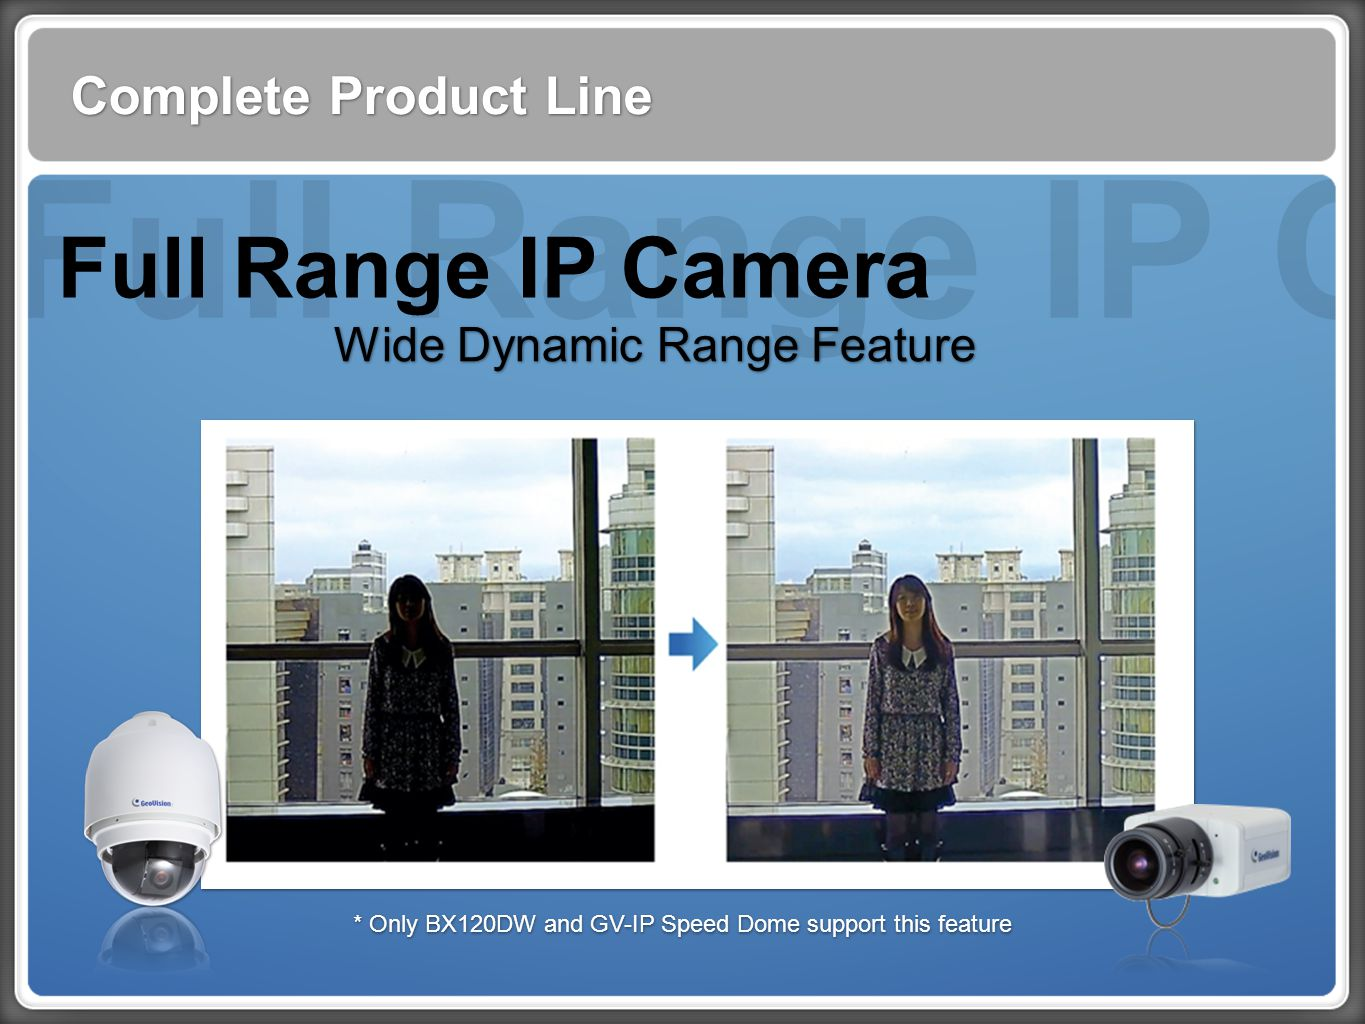 * Only BX120DW and GV-IP Speed Dome support this feature